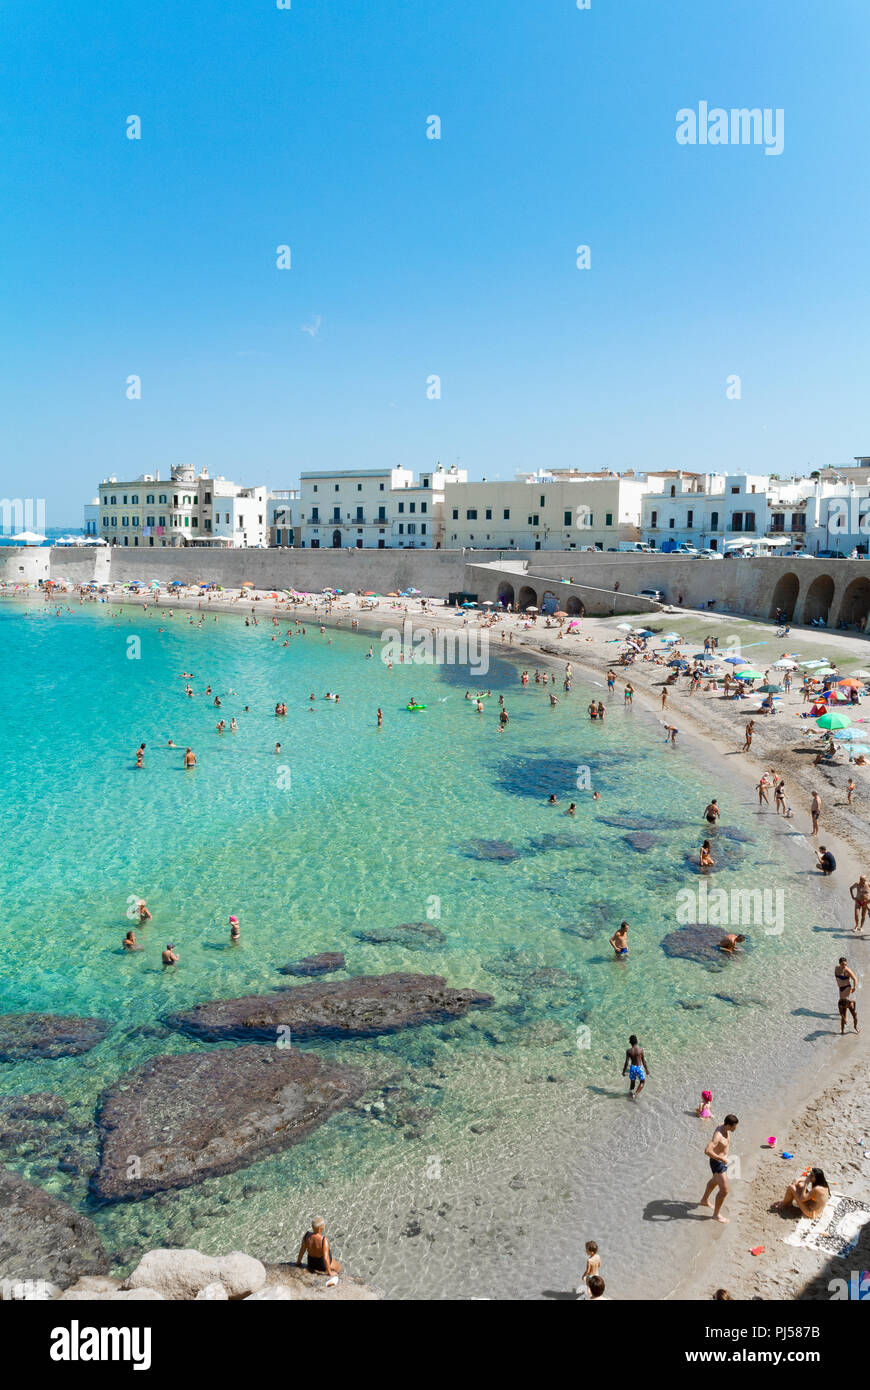 Public beach with italian people, Gallipoli, Lecce, Italy Stock Photo